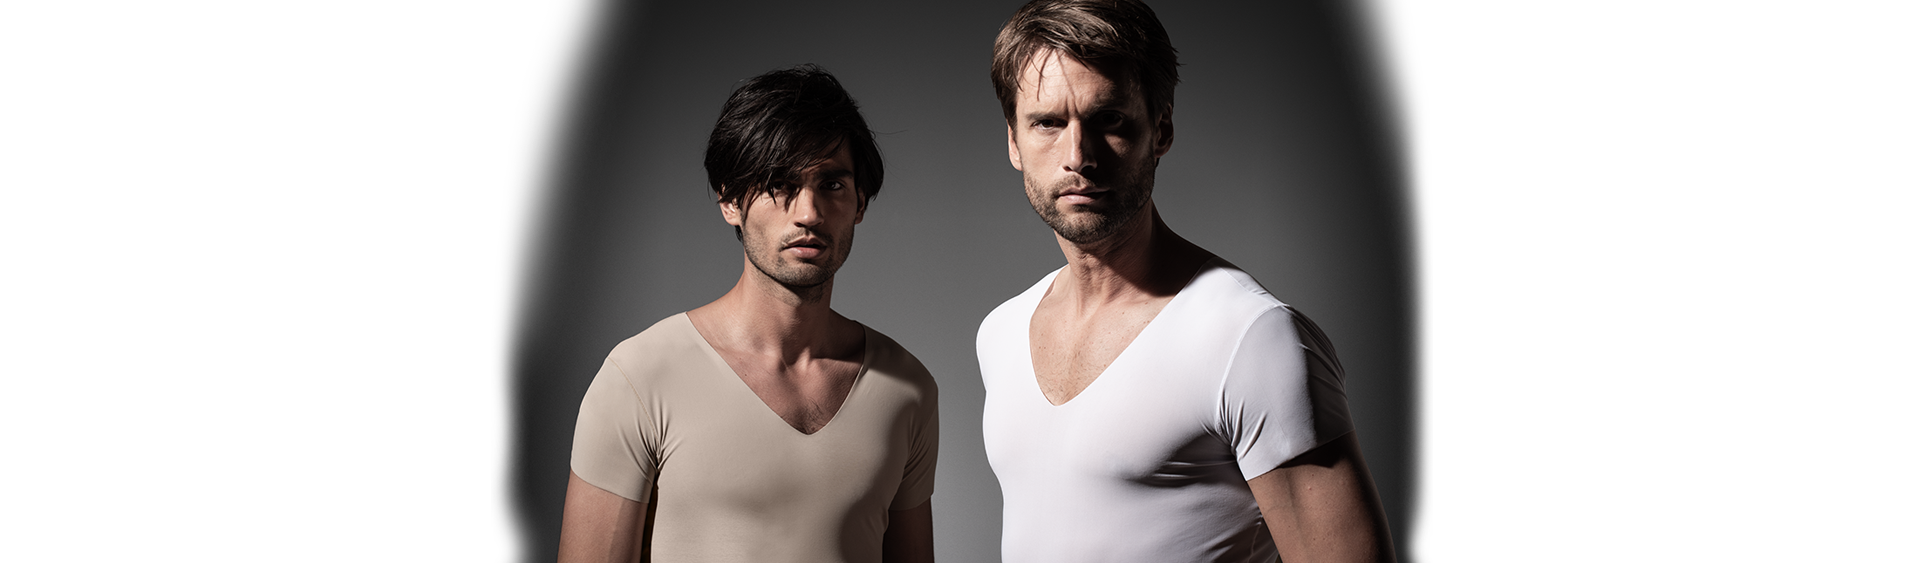 Invisible long men's undershirts for the summertime